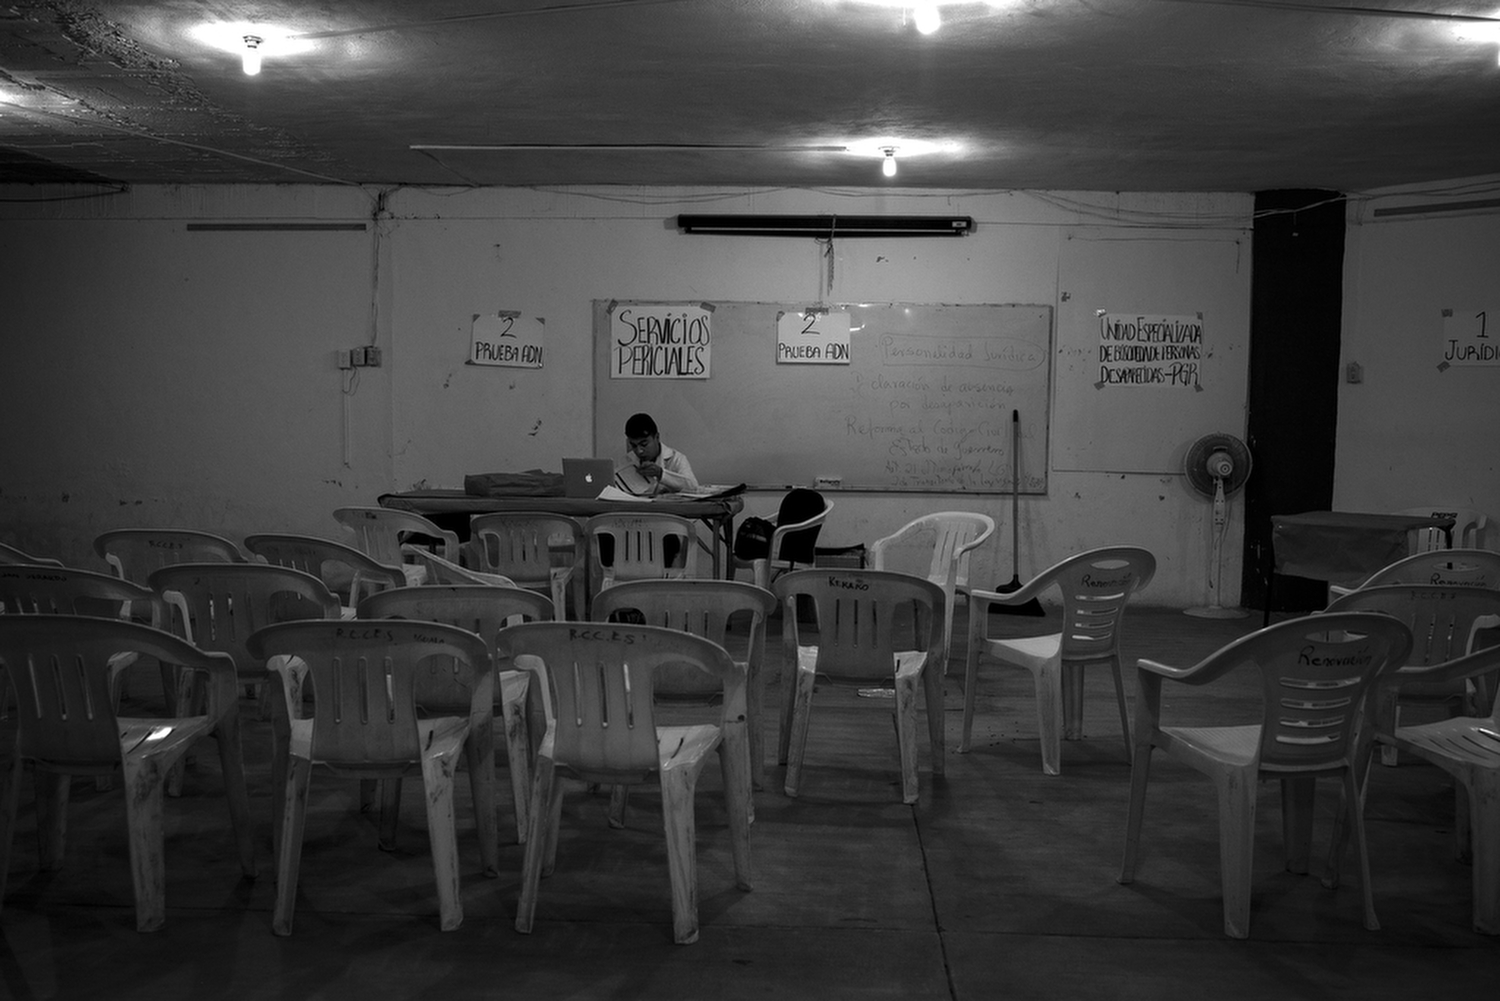 A worker with the    Procuraduría General de la República  (Mexico's Attorney General) sits in a church basement taking DNA samples. As relatives took to the hills to search for the students' remains numerous mass graves were found in the area. Families with missing relatives tested their DNA to help identify remains.